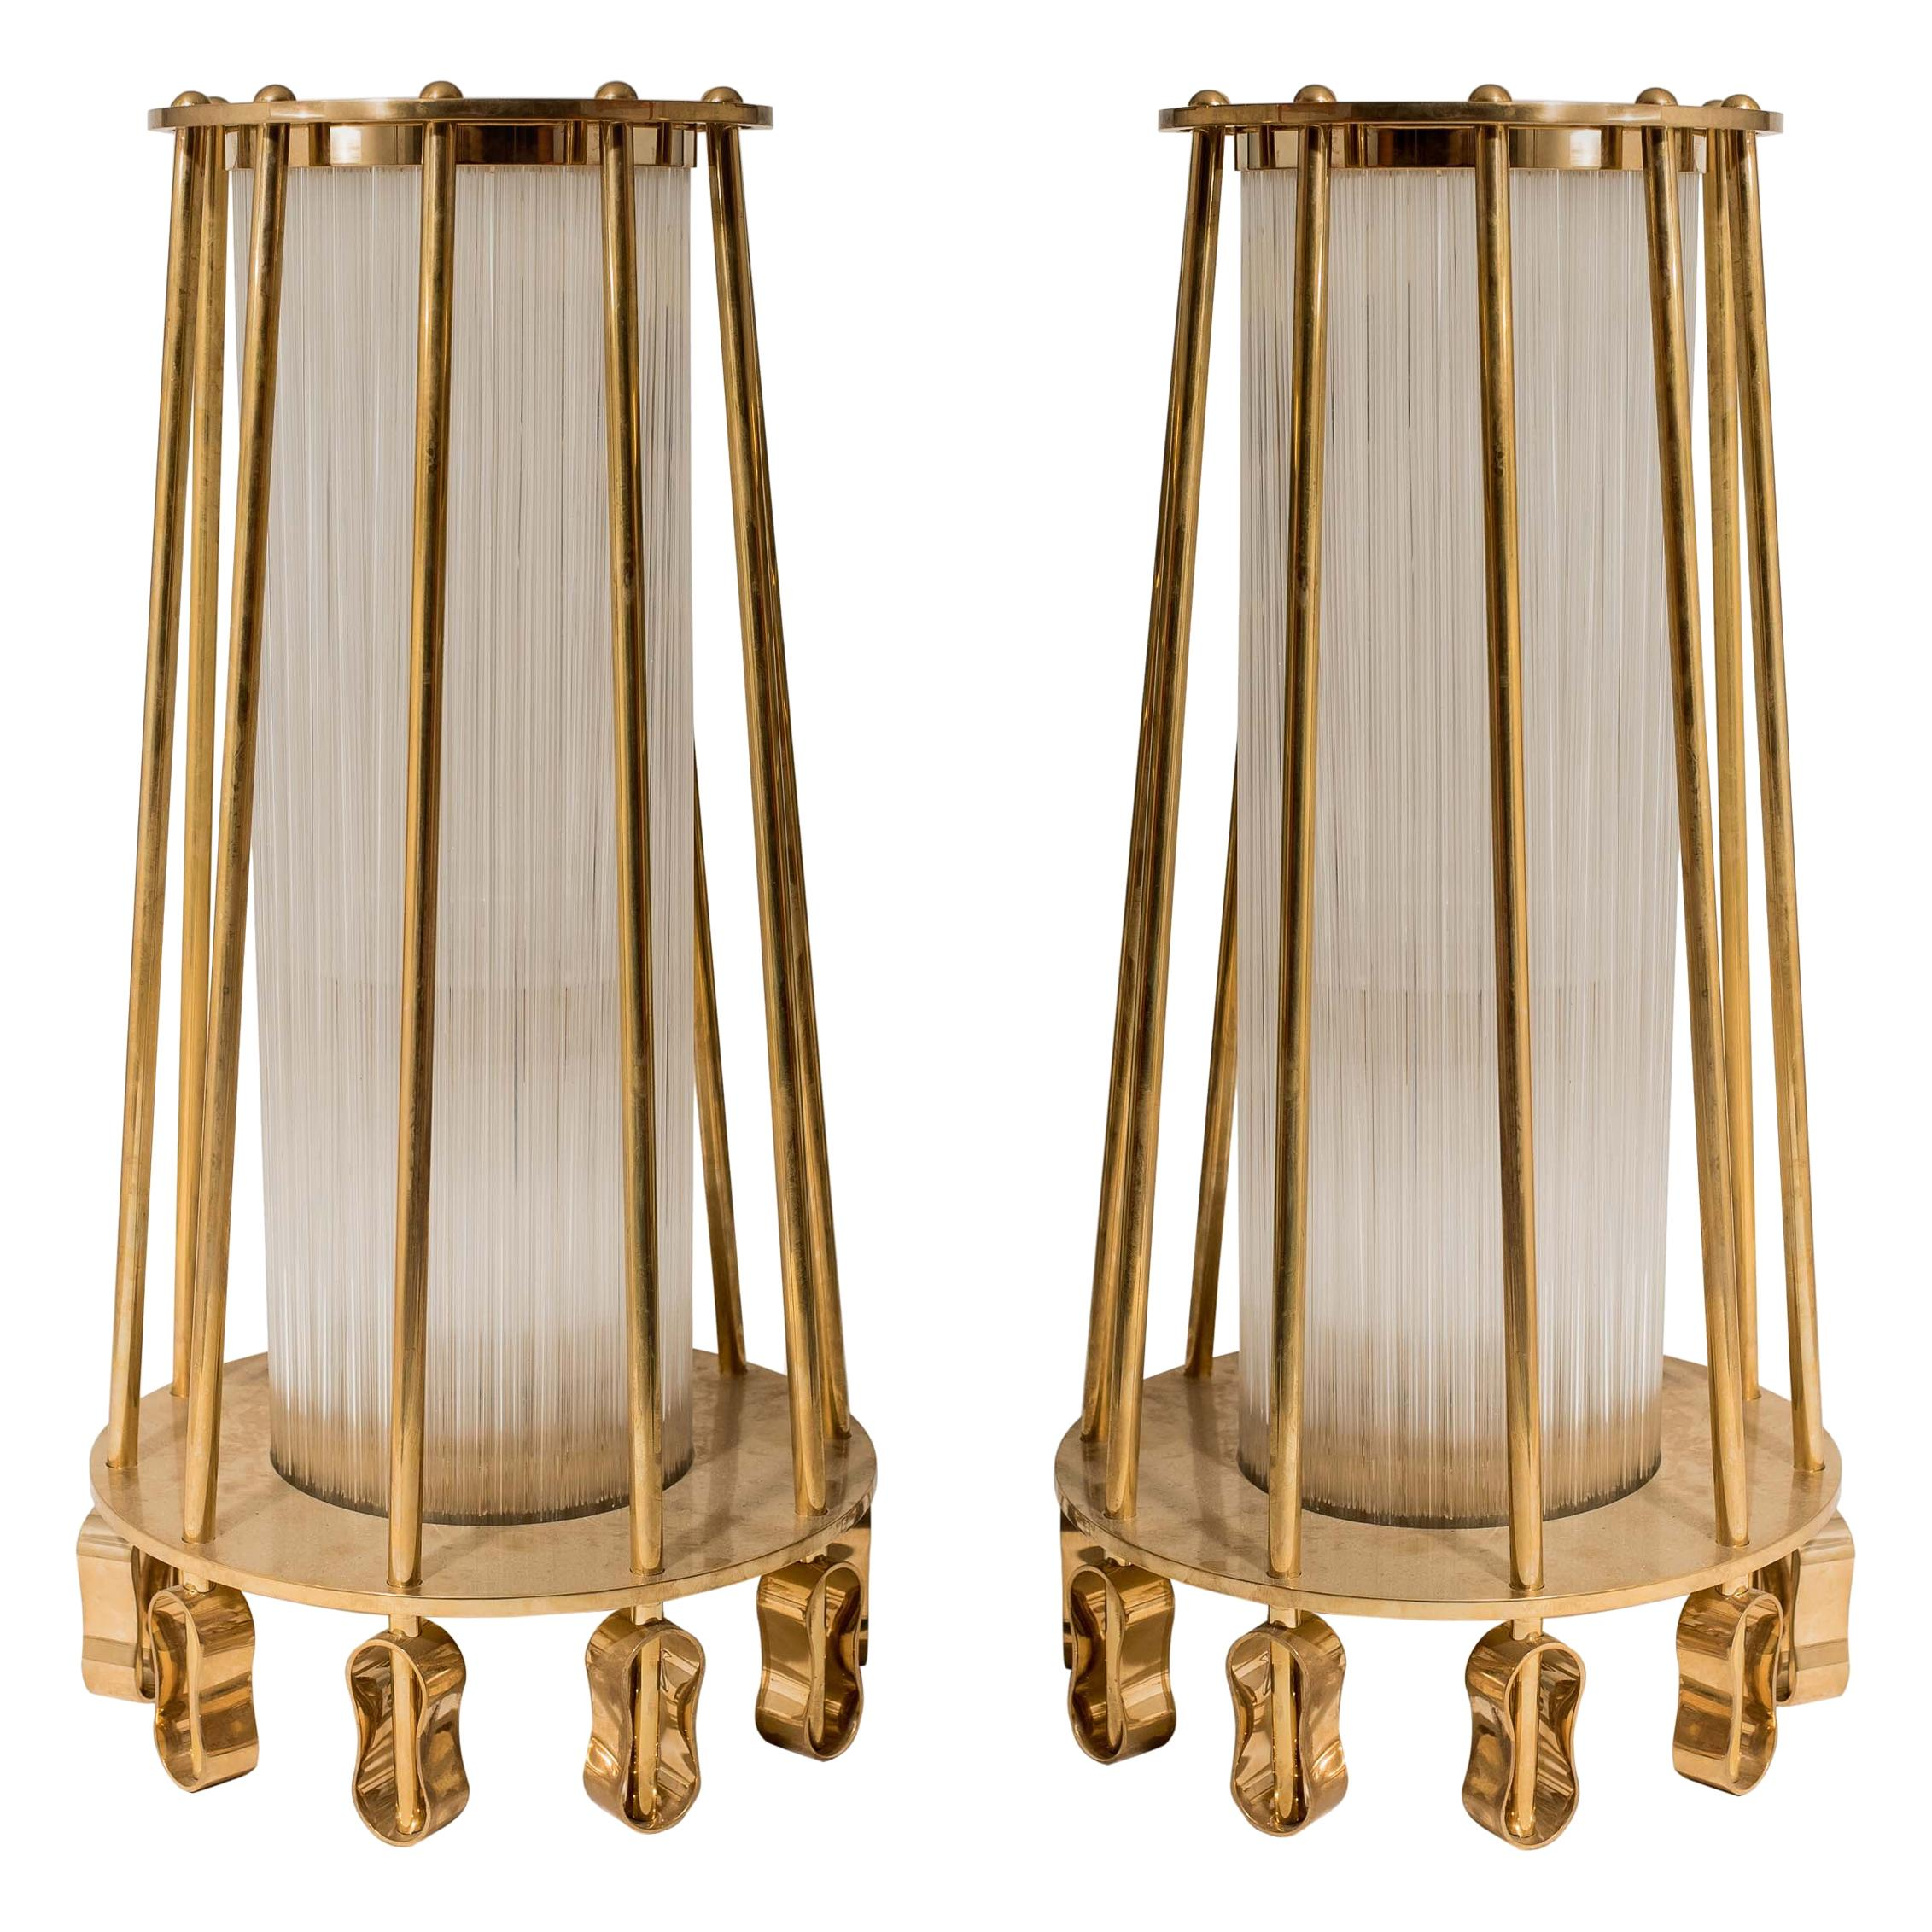 Pair of 1940s Sculptural Column Brass and Clear Glass Floor Lamps Italian Design